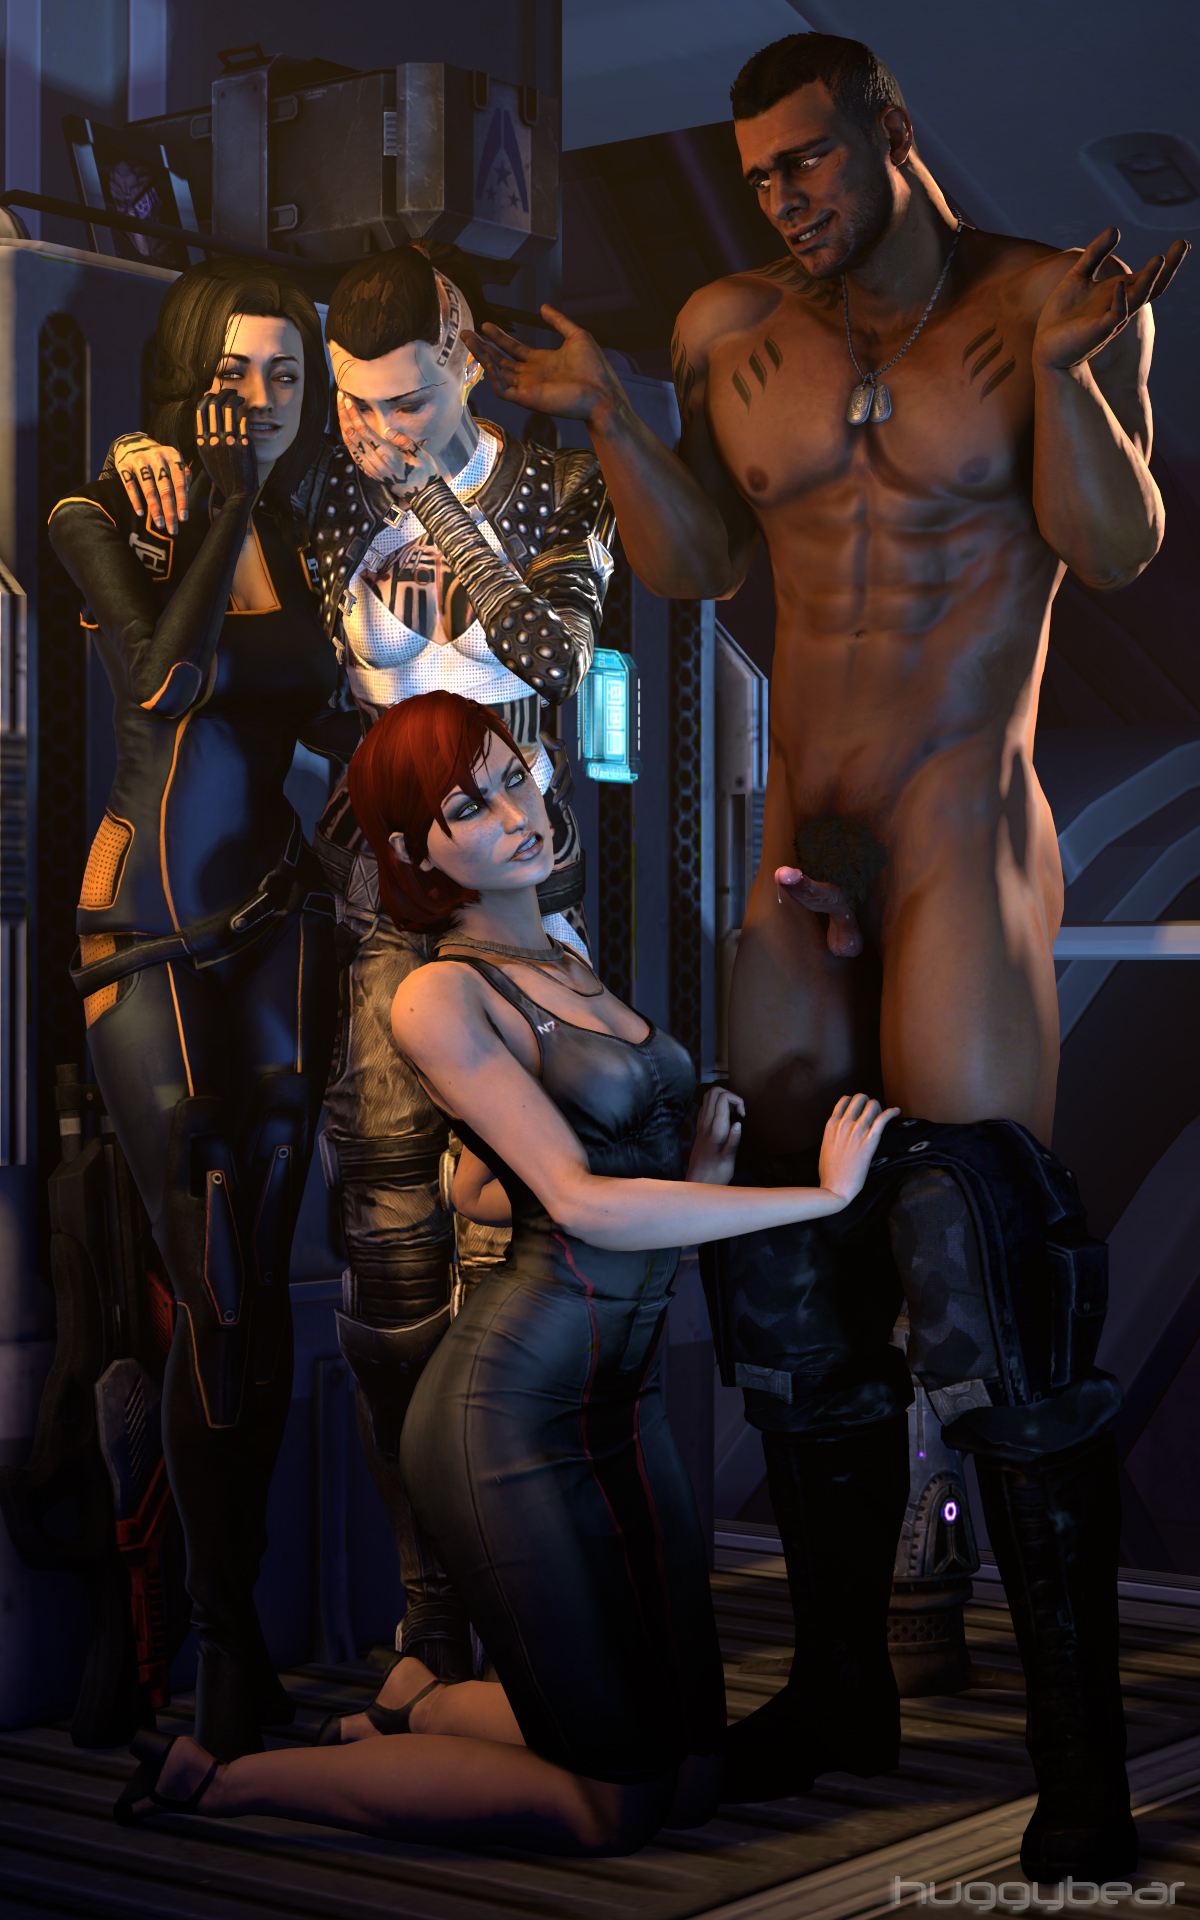 Mass effect erotic sex art xxx photo